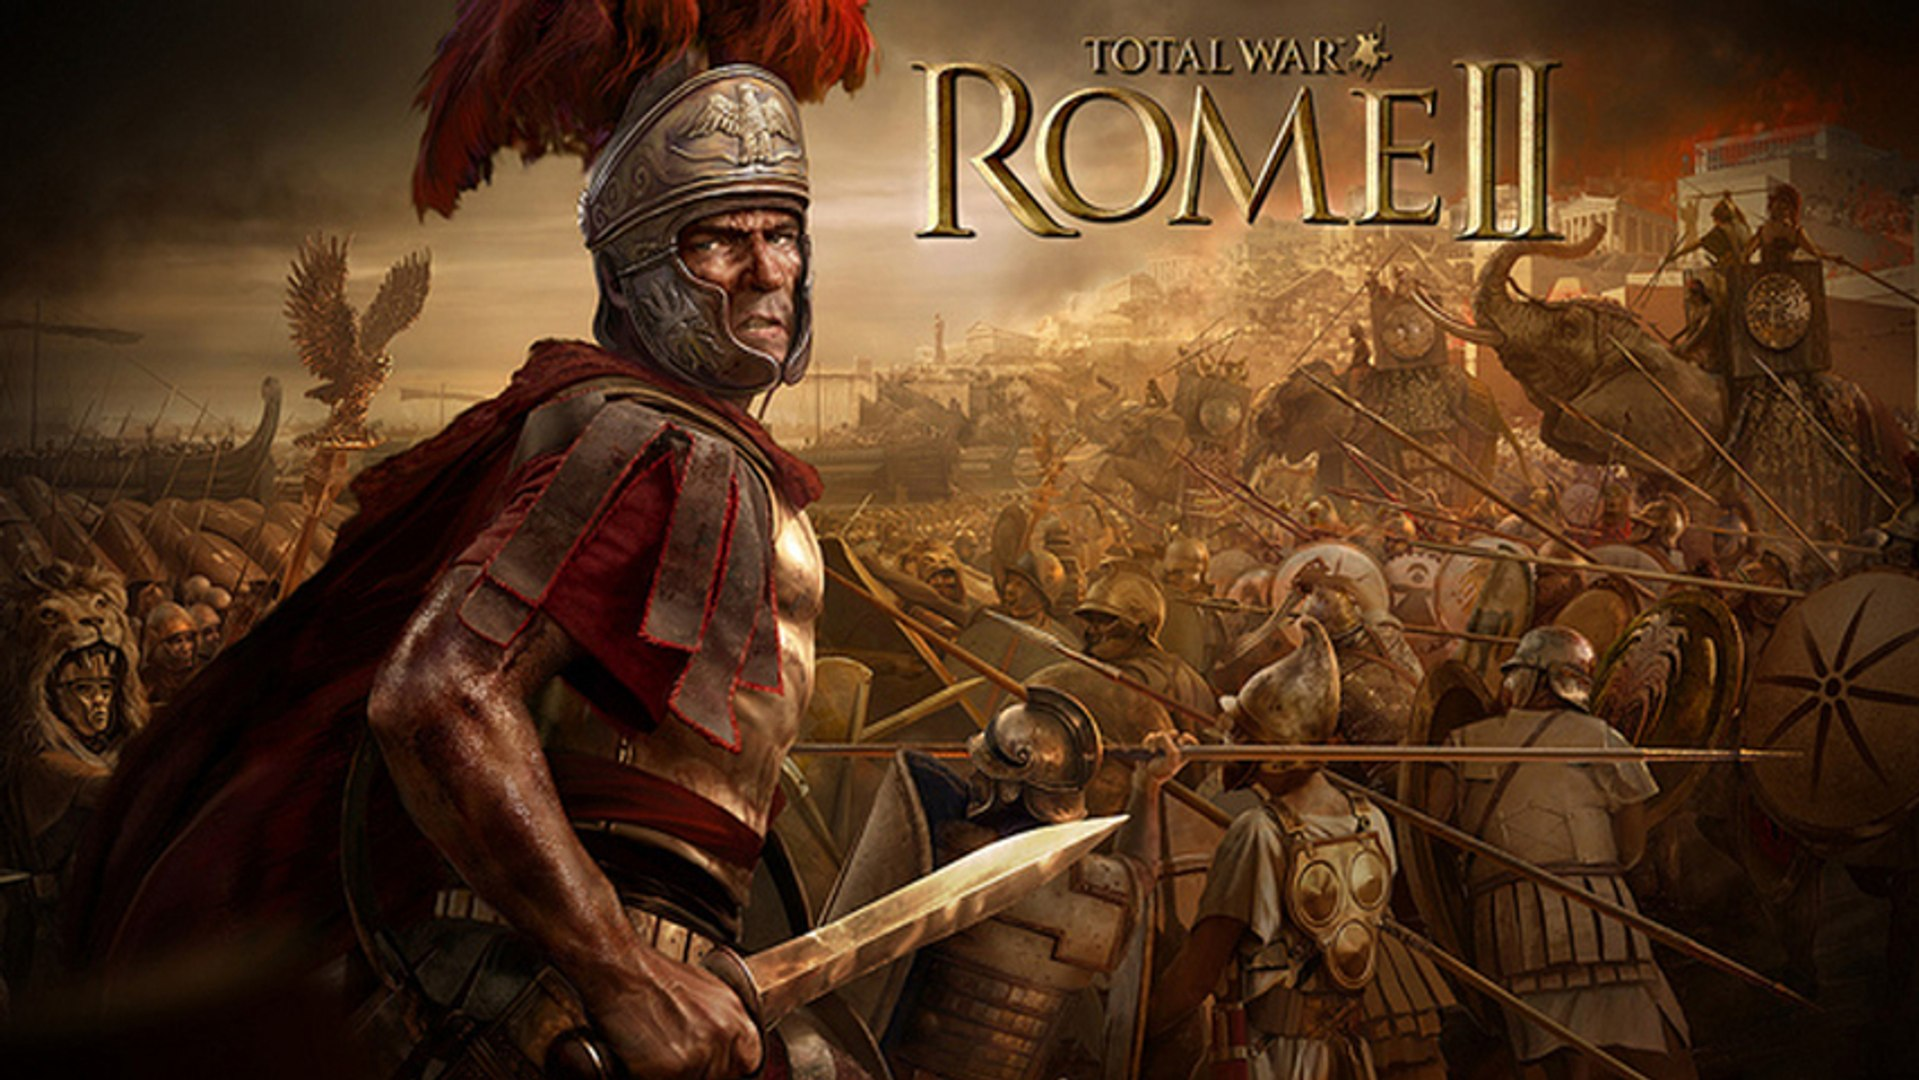 Total War: ROME II presents the Throwing War with Brian Blessed